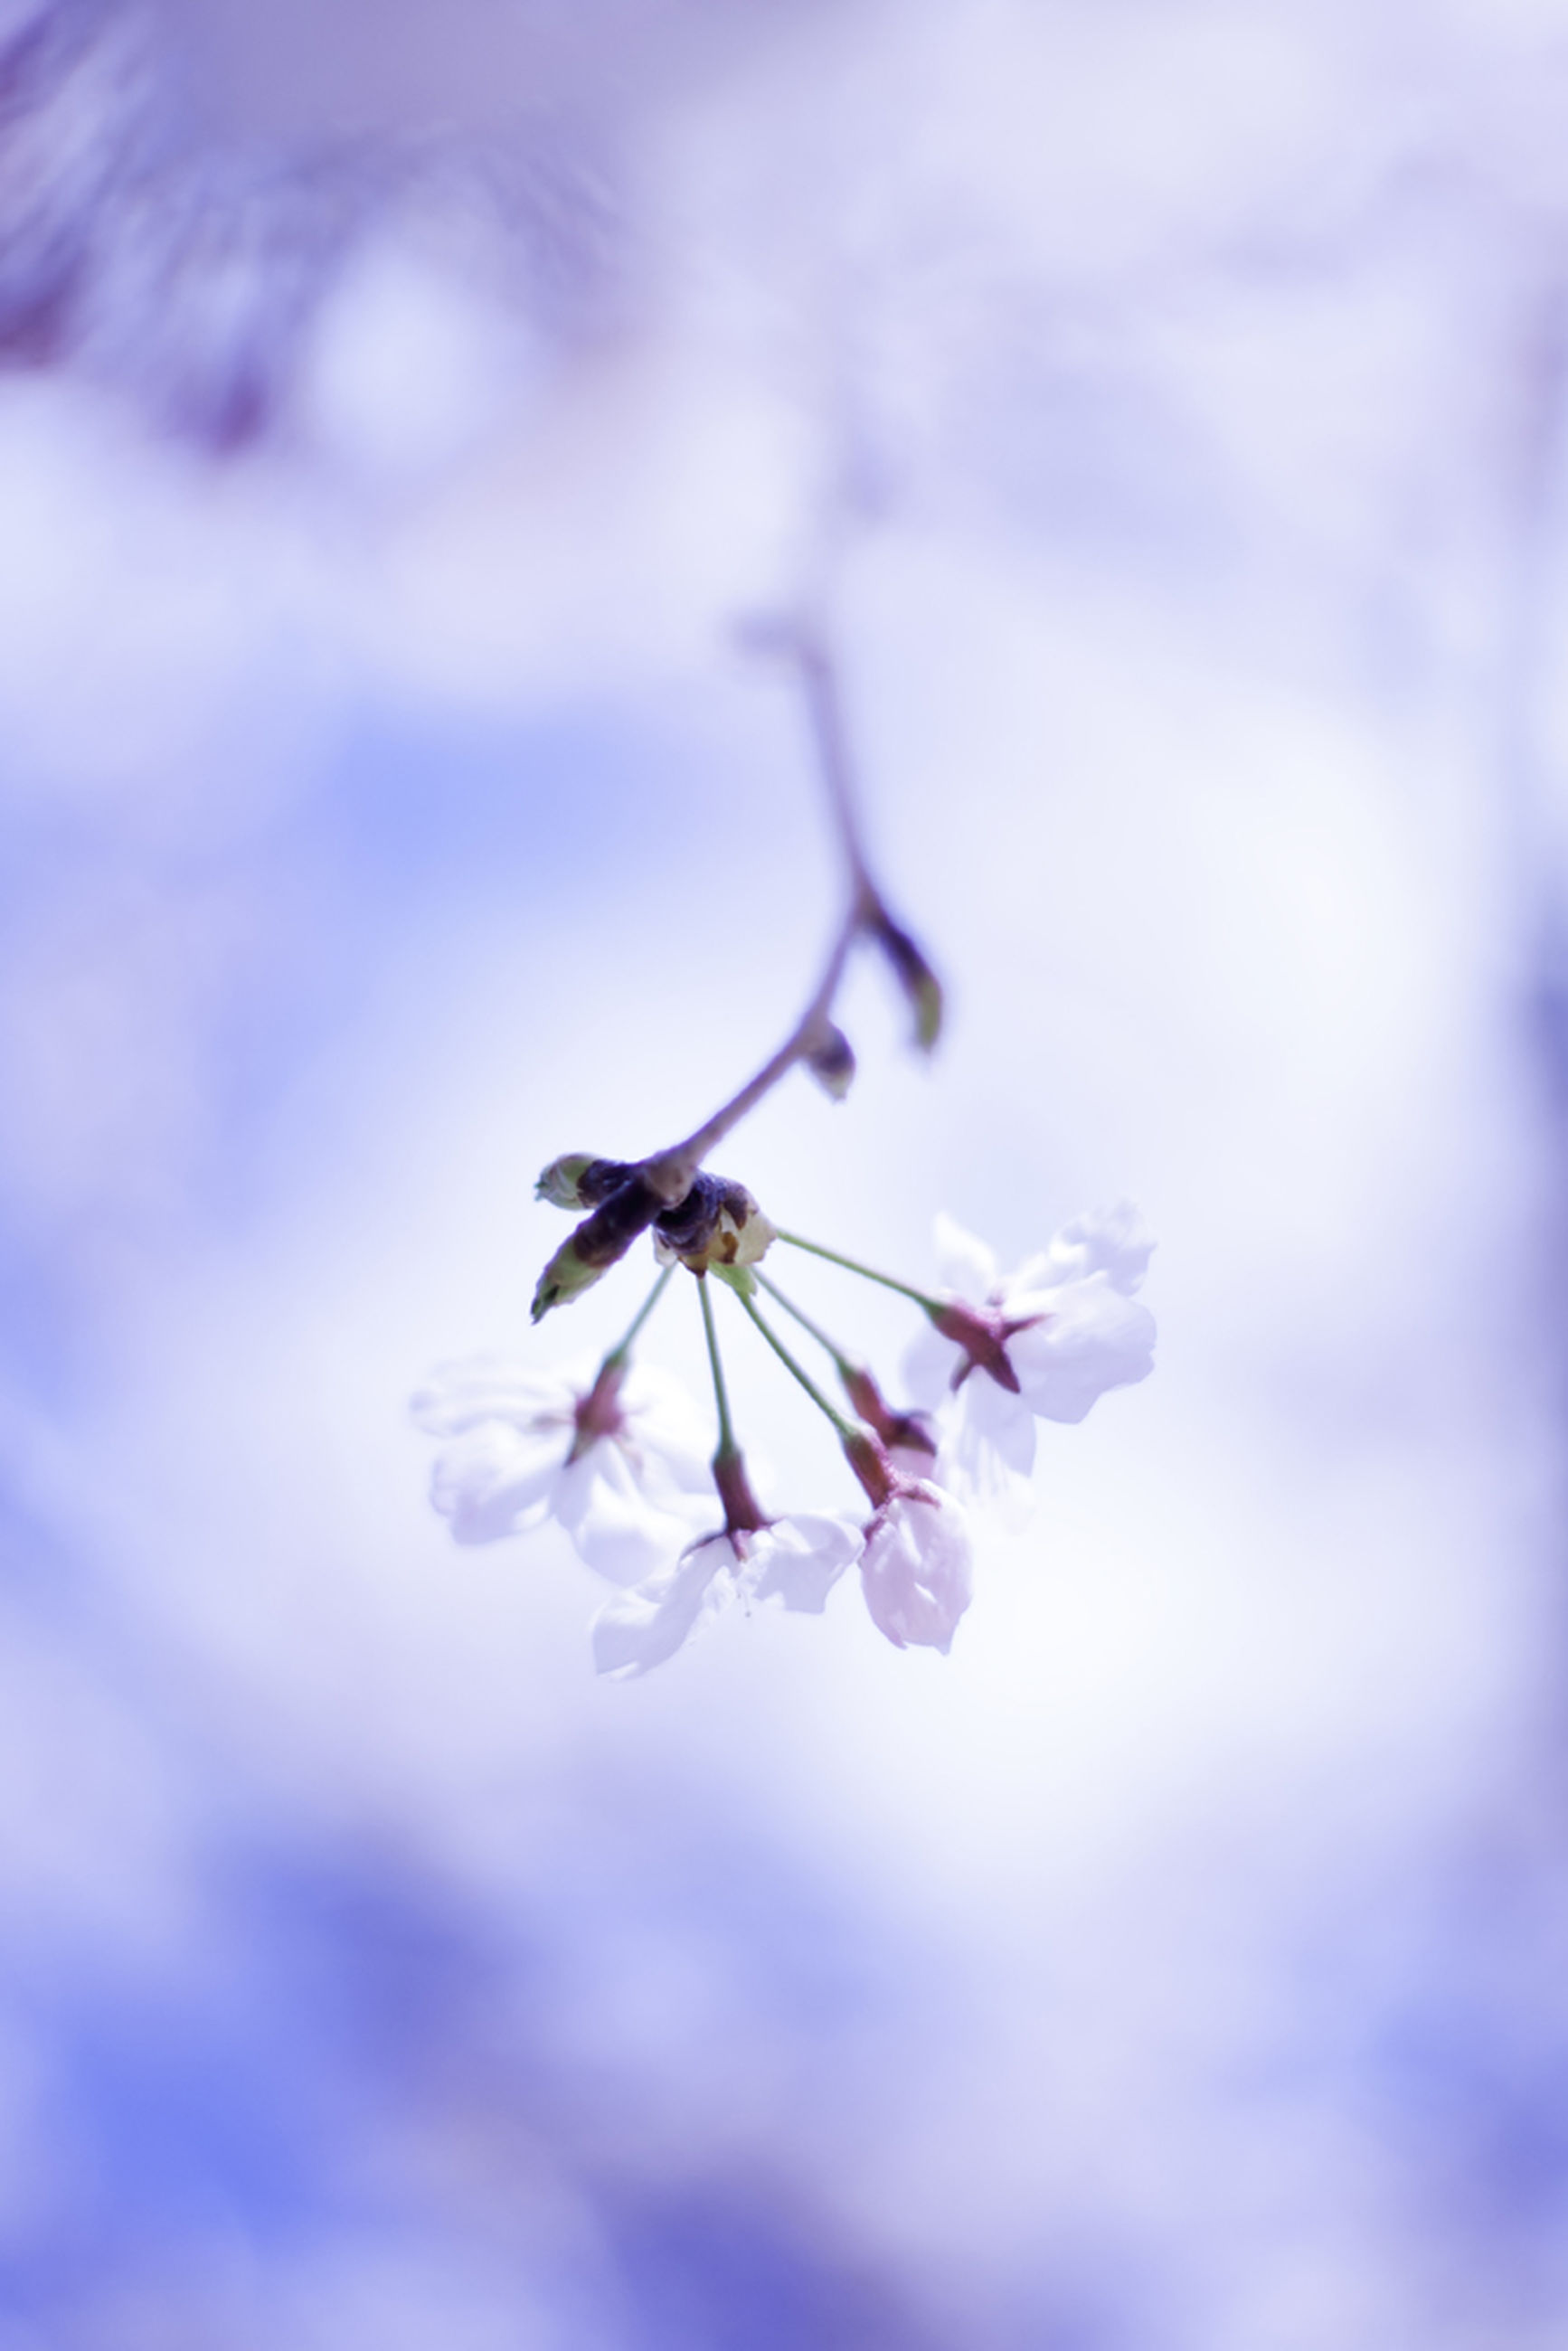 flower, fragility, freshness, focus on foreground, beauty in nature, growth, nature, close-up, petal, branch, selective focus, twig, low angle view, in bloom, blossom, purple, day, cherry blossom, tree, outdoors